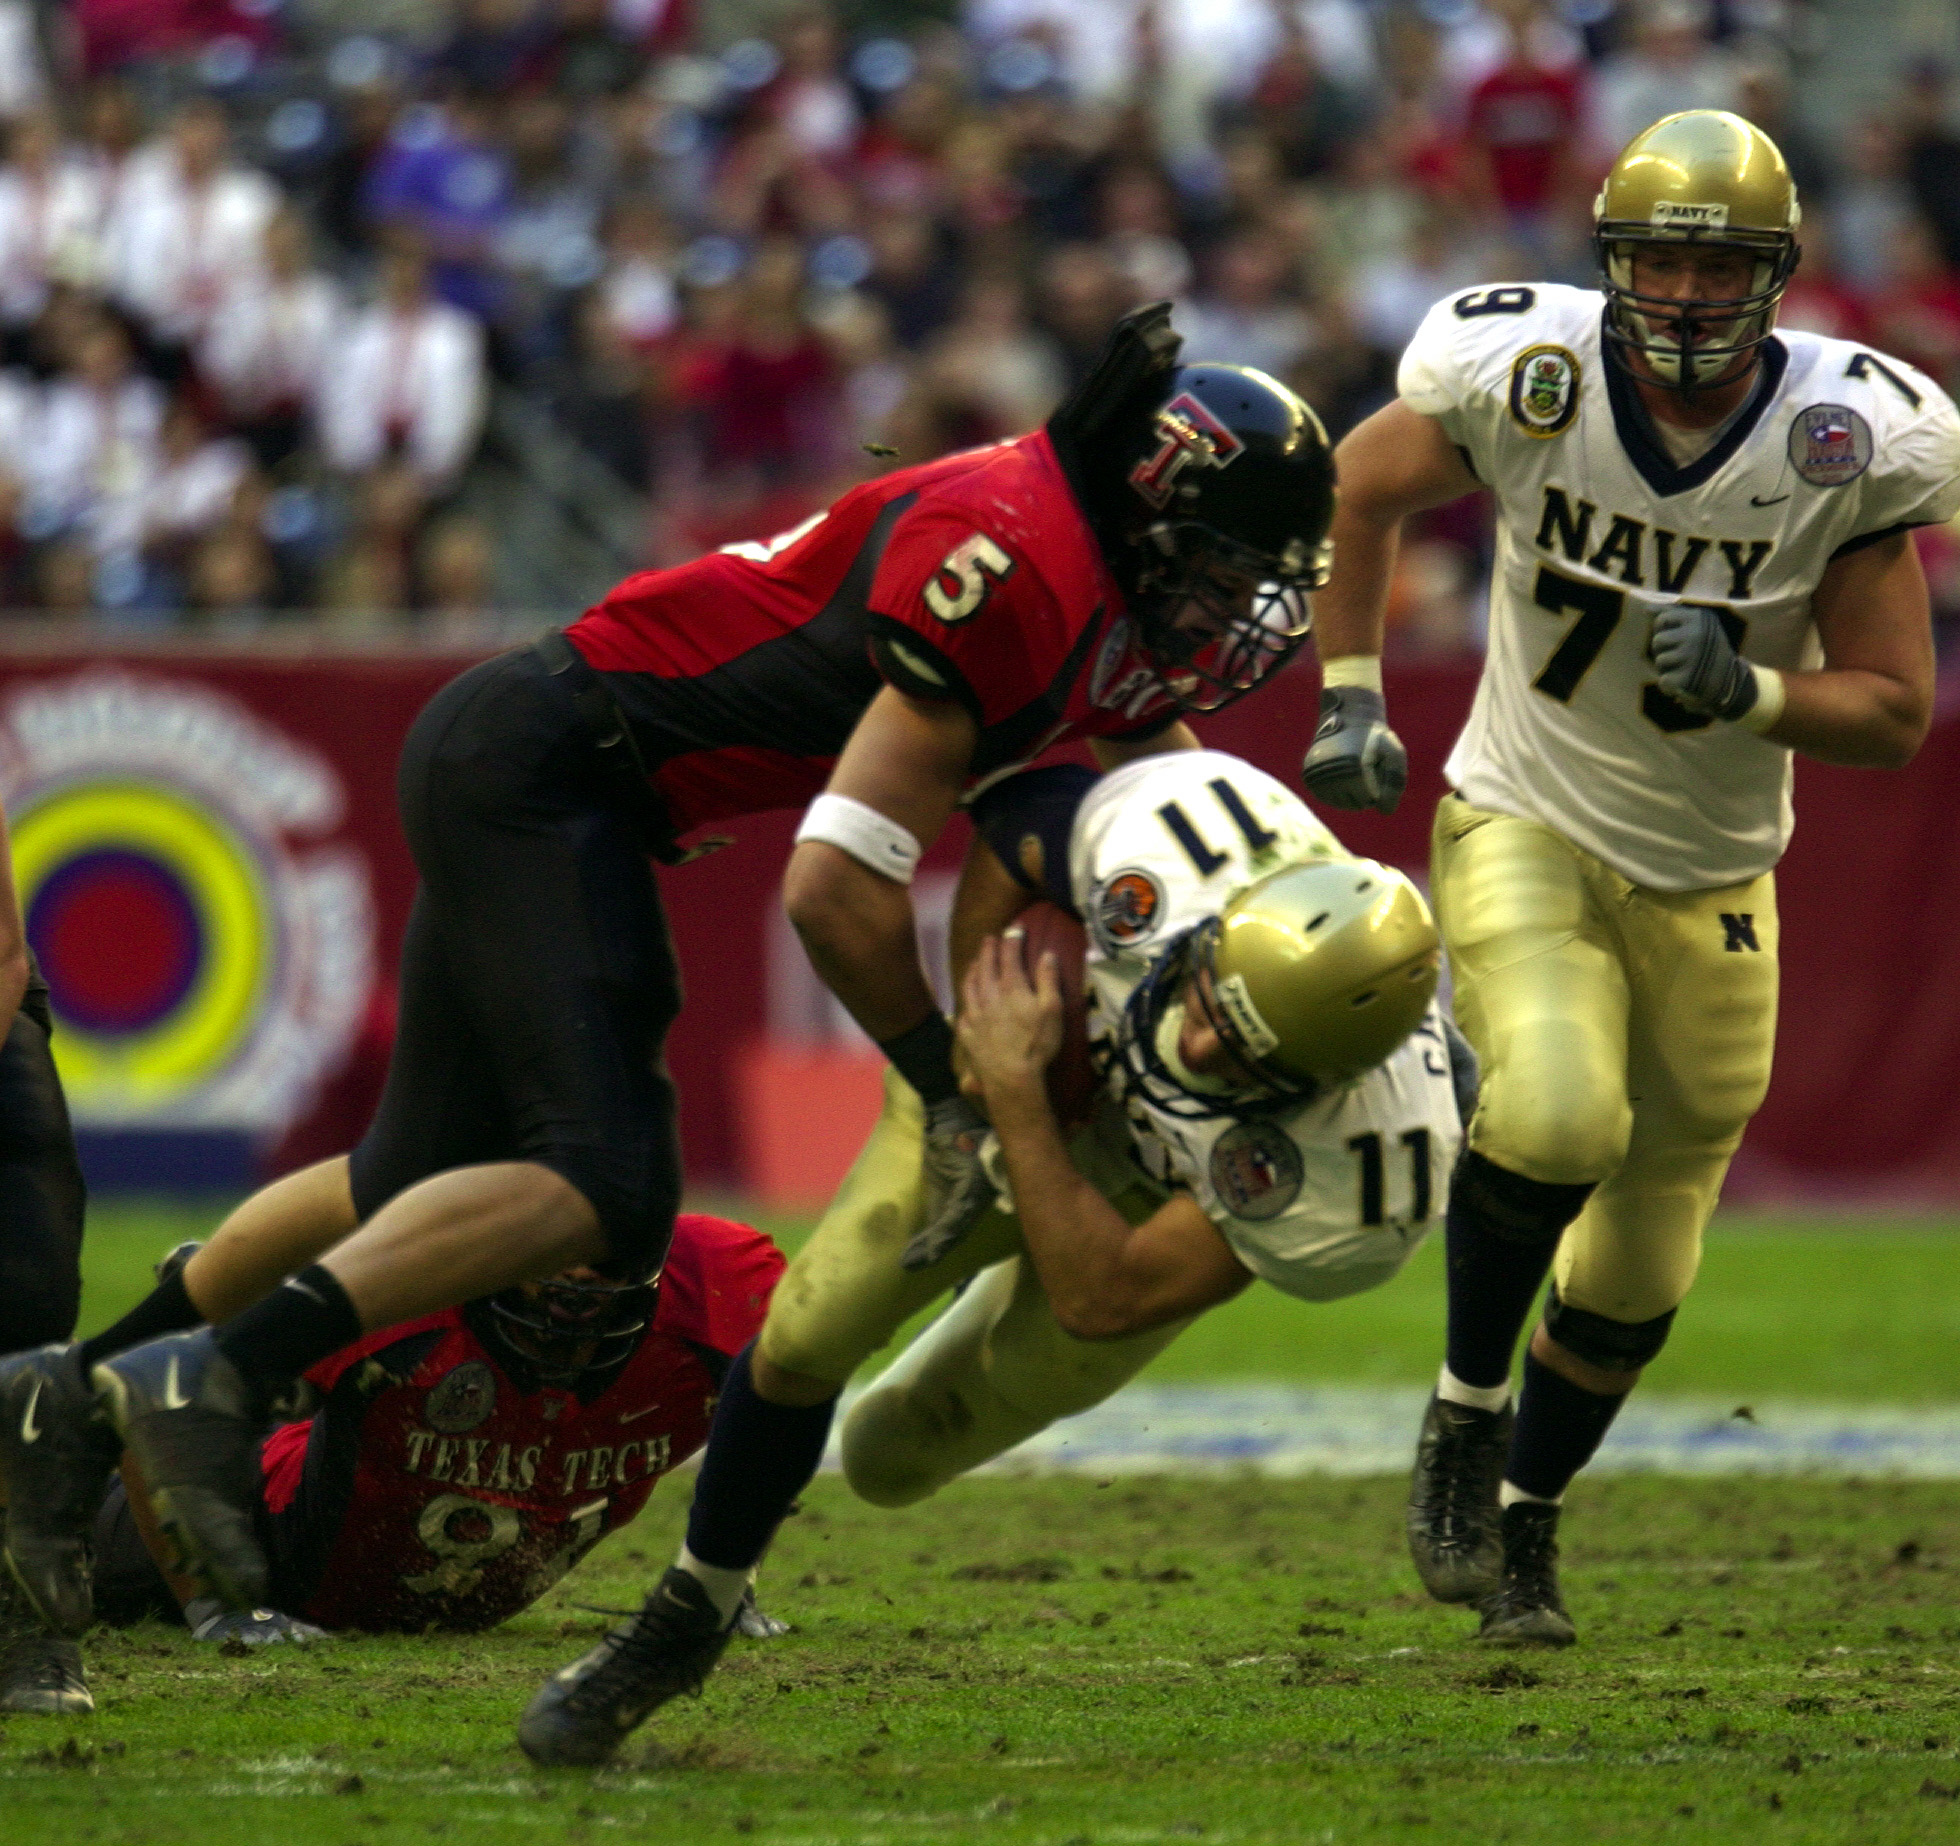 Exterieurs also Ral Farben also Roto Fenstergriff 208673 Ev1 additionally File US Navy 031230 N 9693M 006 Navy quarterback Craig Candeto is tackled by Texas Tech linebacker John Saldi on a rushing attempt during the EV1   Houston Bowl at Reliant Stadium in Houston  Texas also Haustuer Schueco Bew M4. on ev1 images